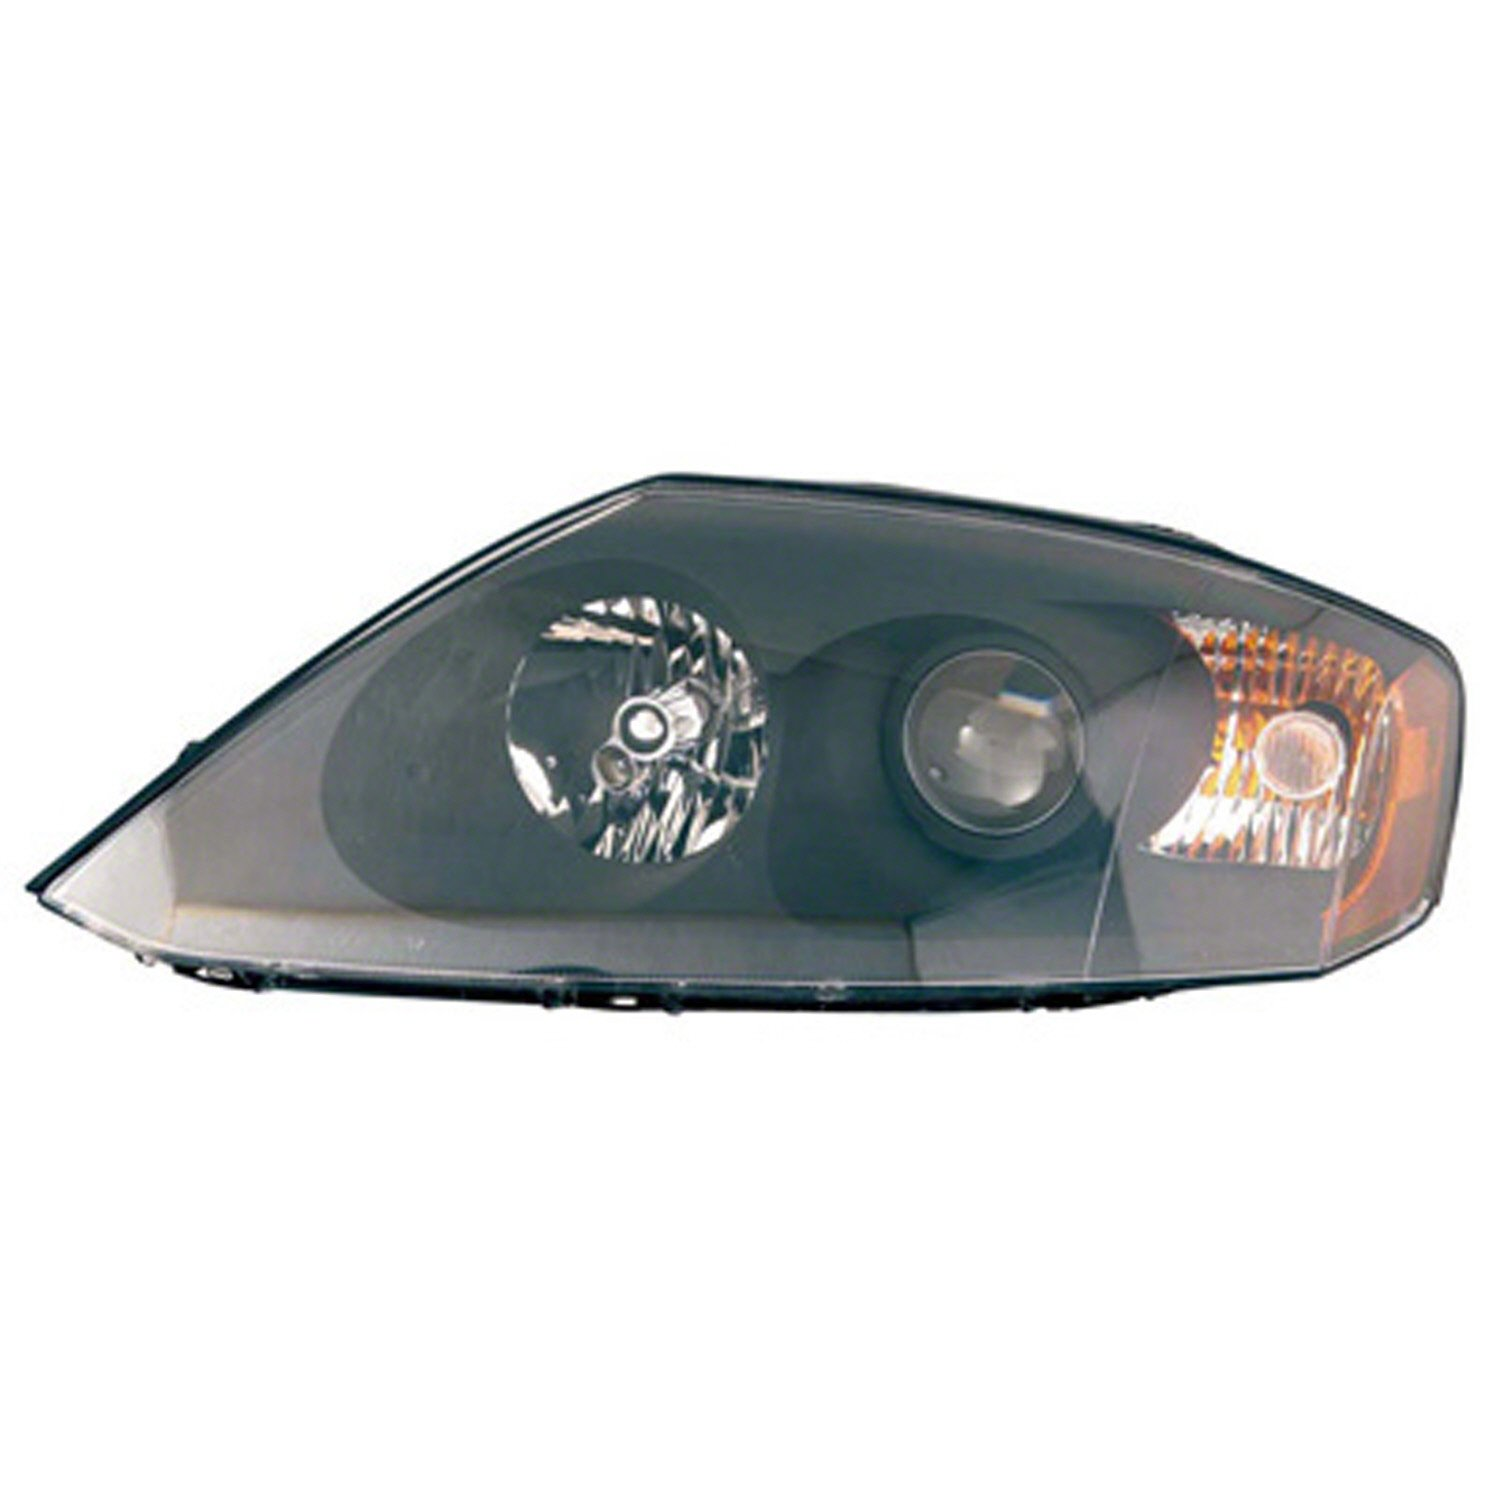 HYUNDAI TIBURON PartsChannel HY2503149C OE Replacement Headlight Assembly